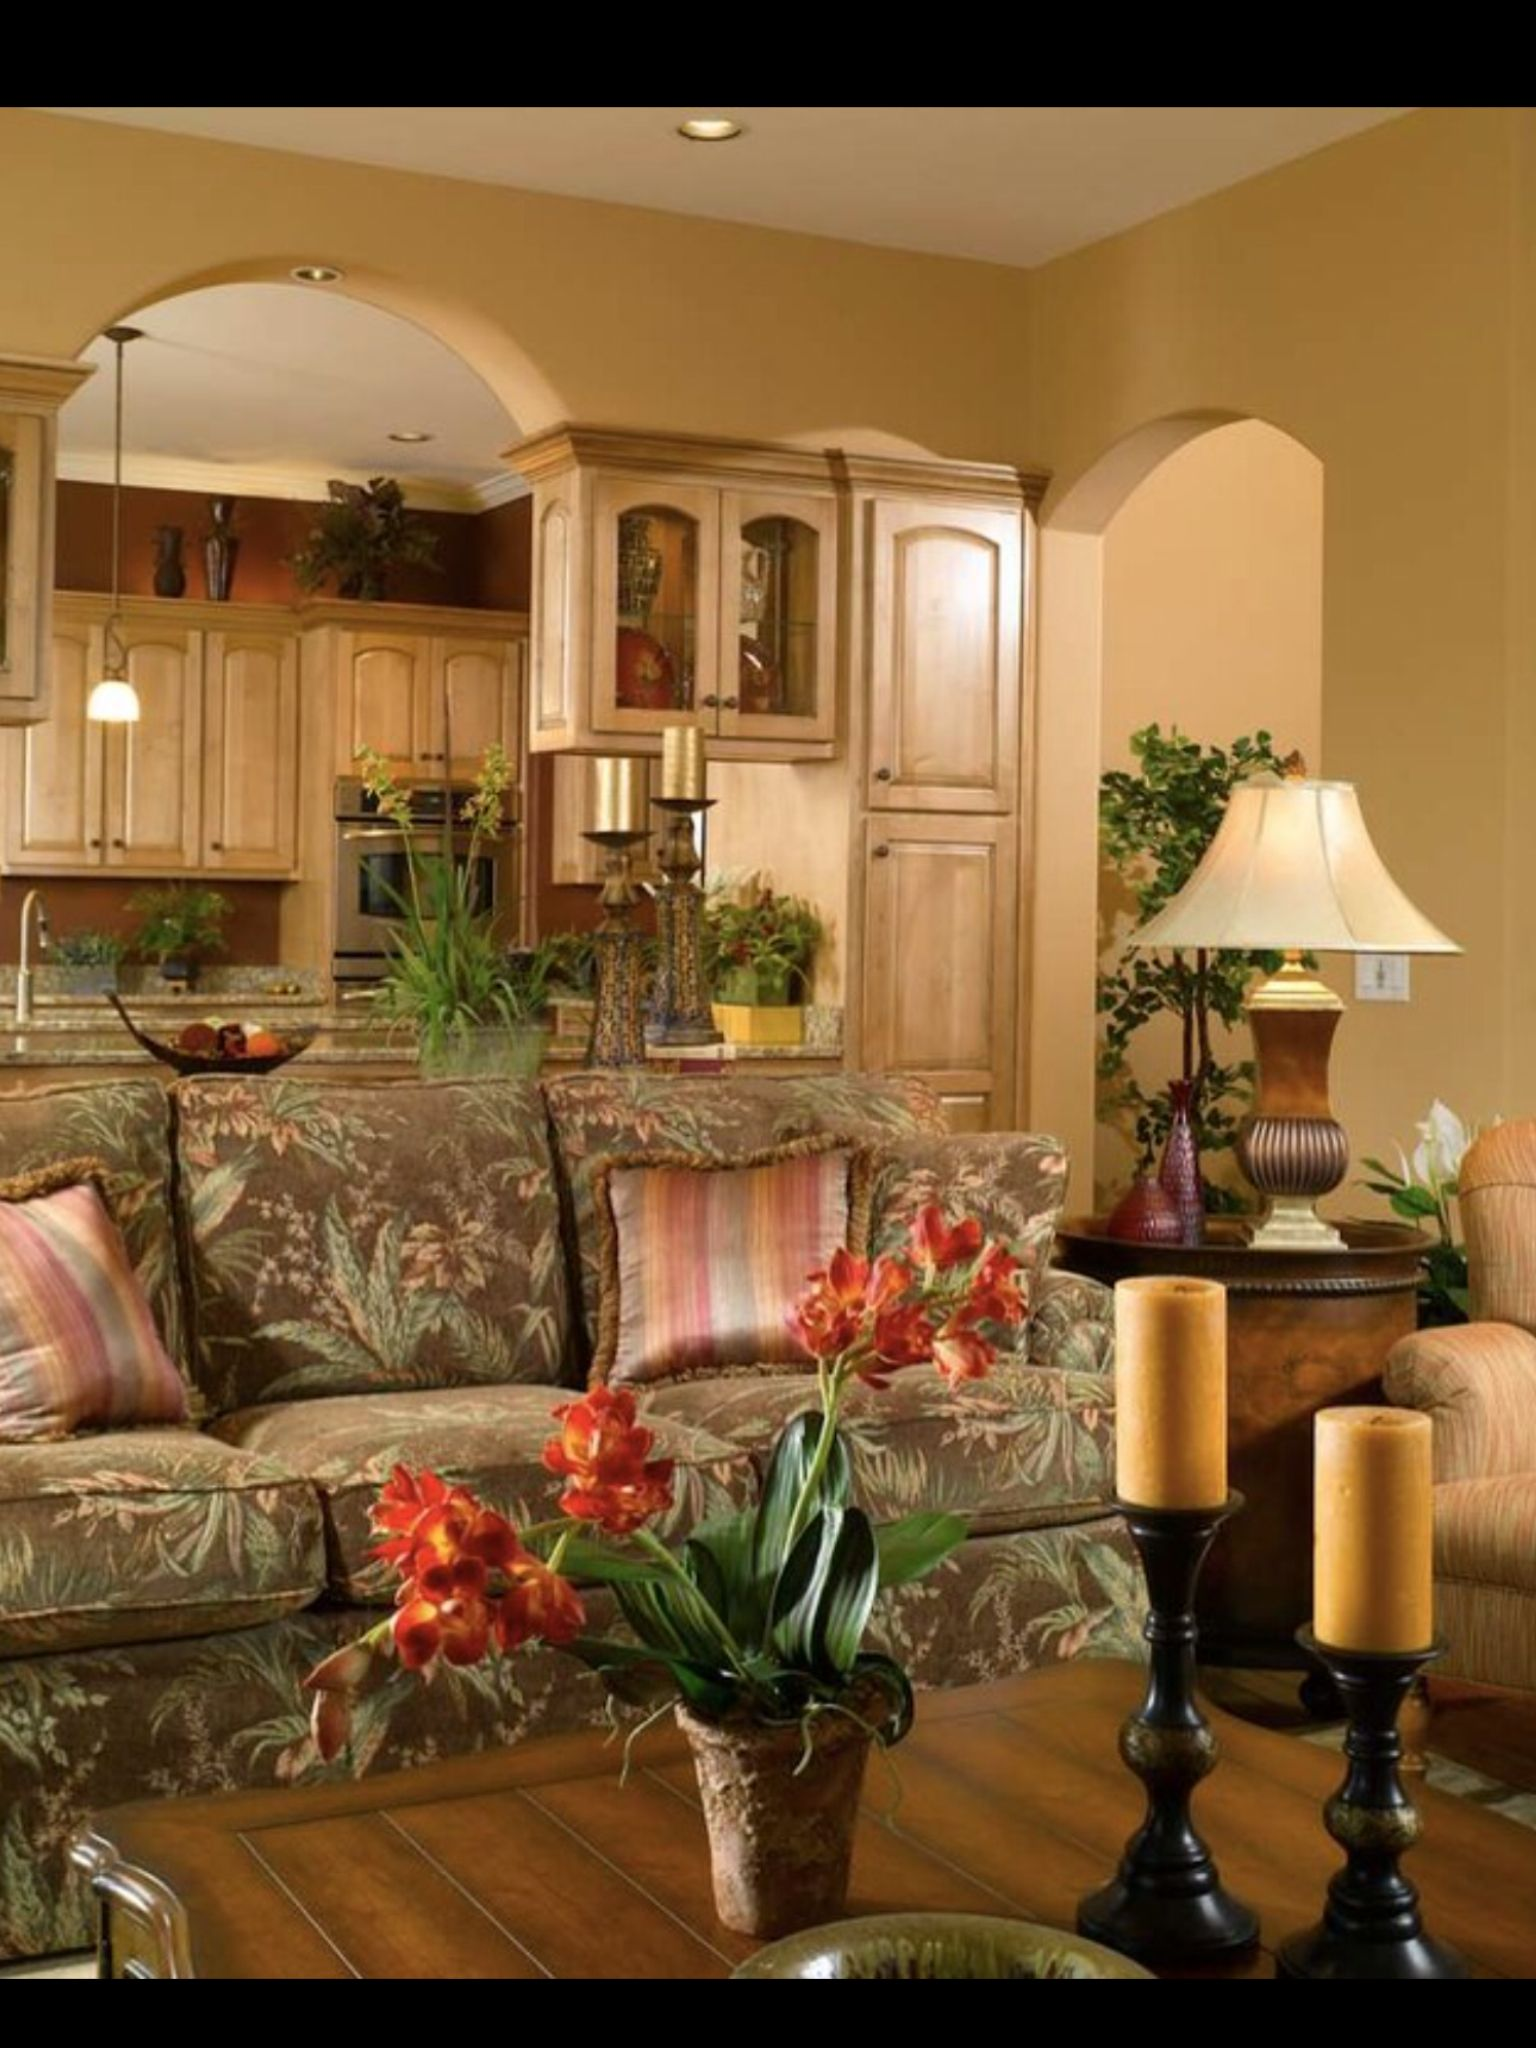 Tv Showcase Design Ideas For Living Room Decor 15524: Love The Arch With Bookend Cabinets Over Bar.